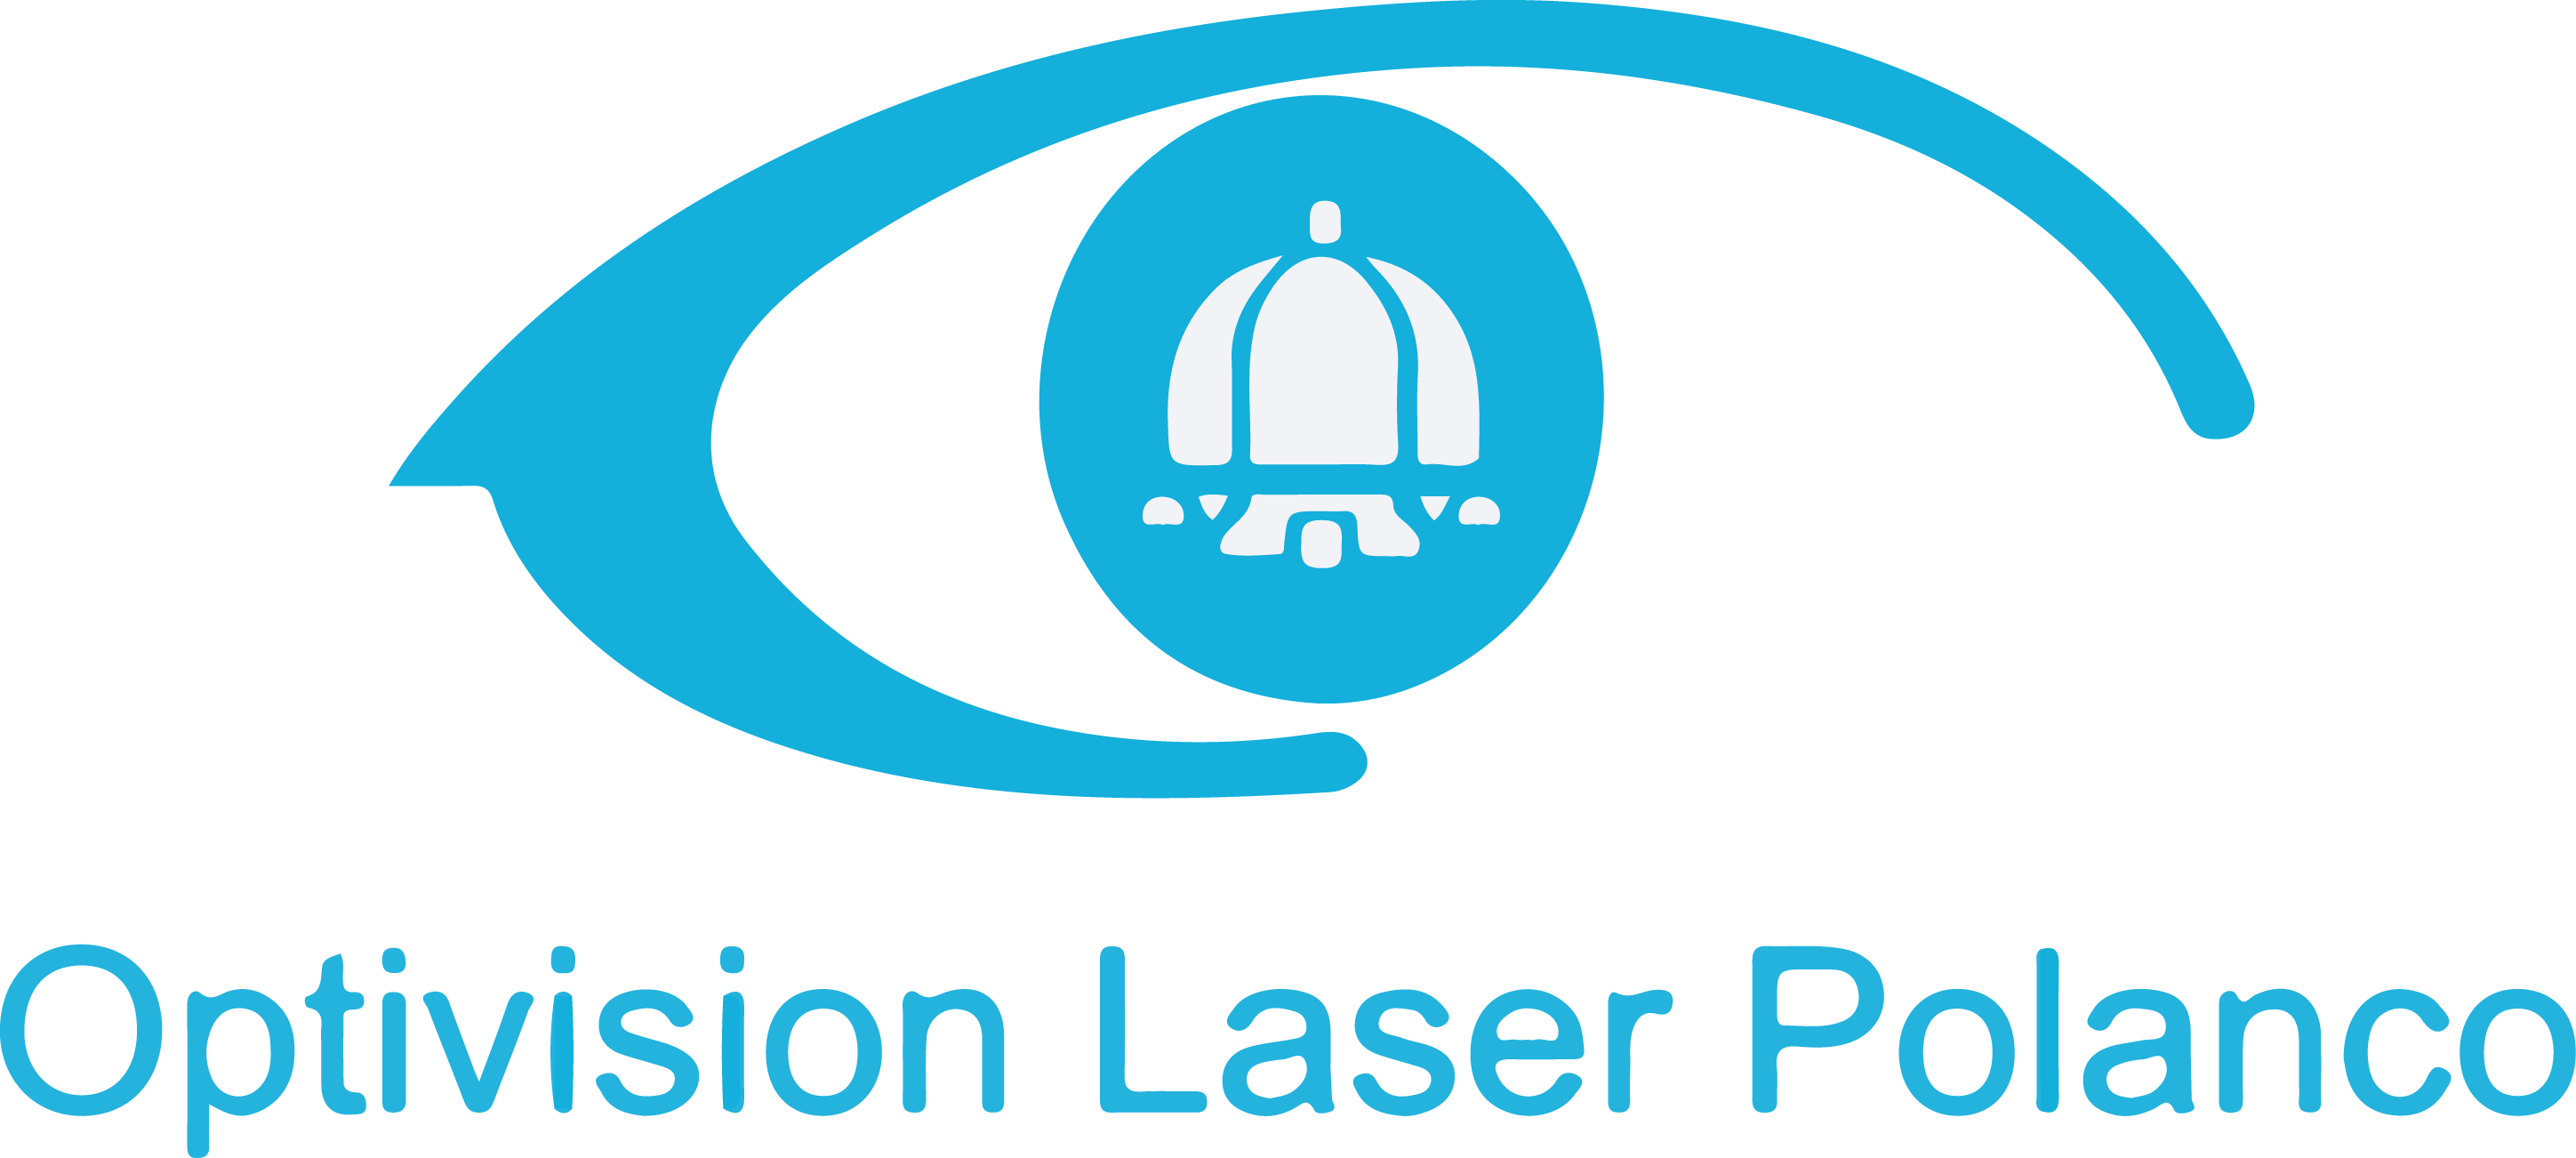 Optivision Laser Polanco